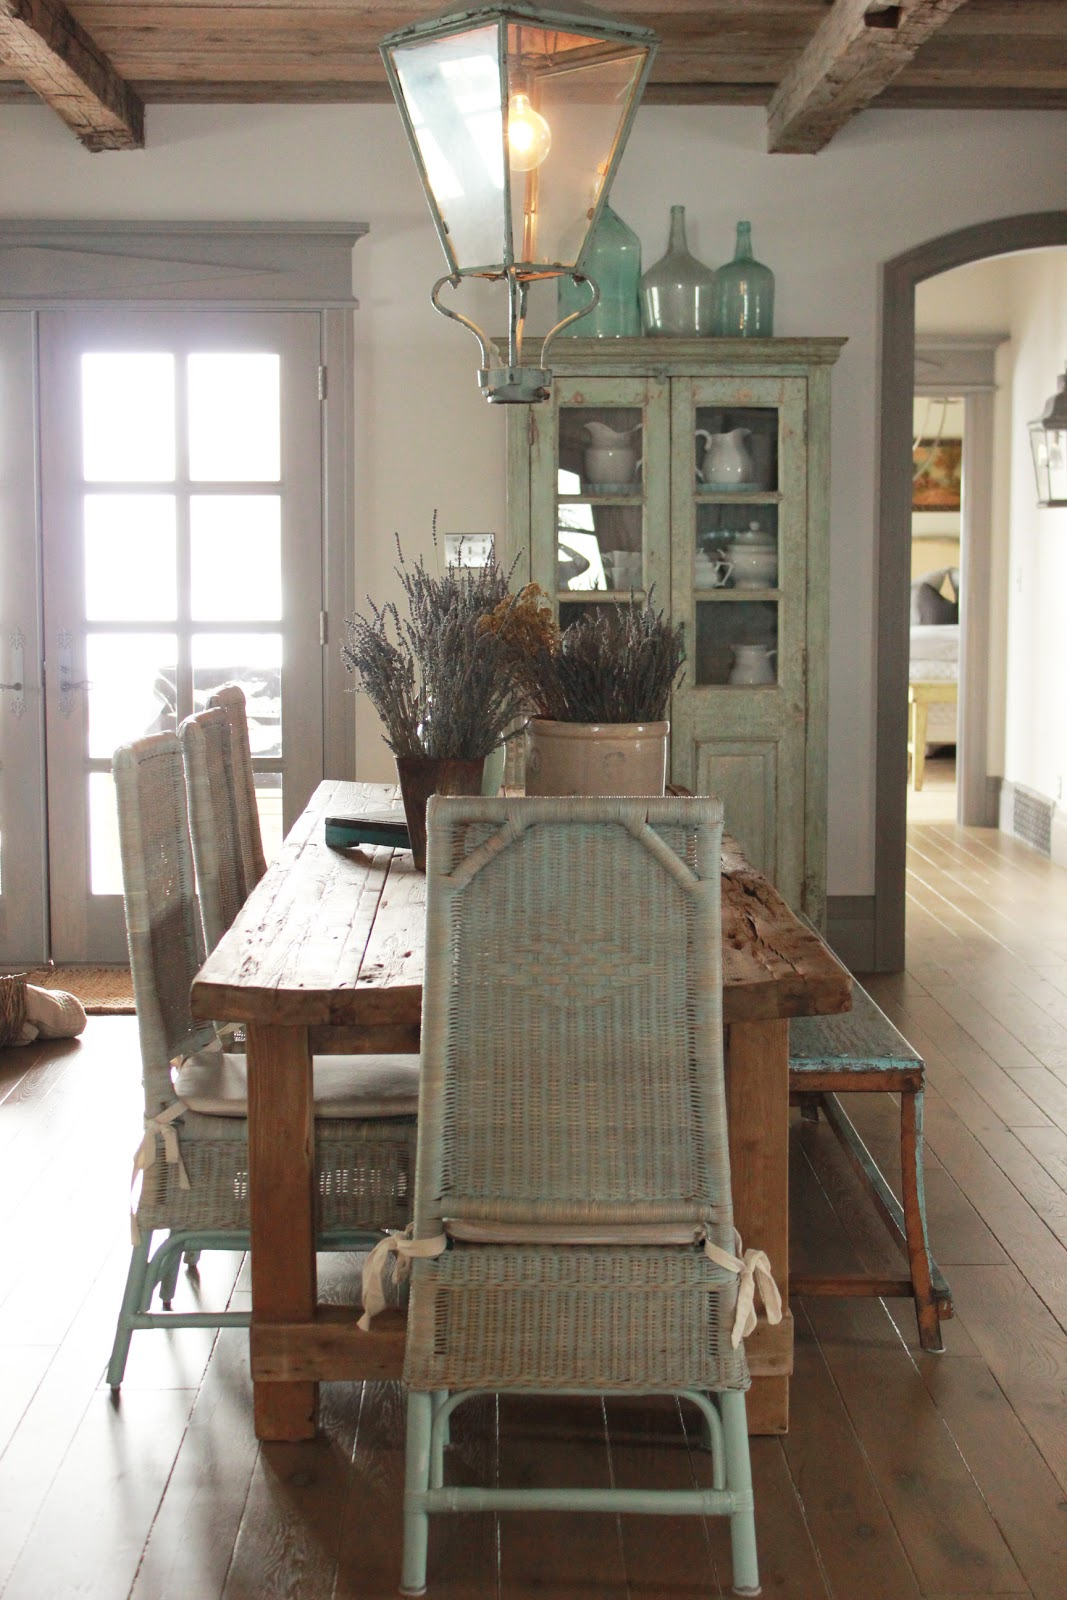 Beautiful rustic elegant Nordic French farmhouse dining room with vintage cupboard and green accents #farmhousediningroom #FrenchCountry #rusticdecor